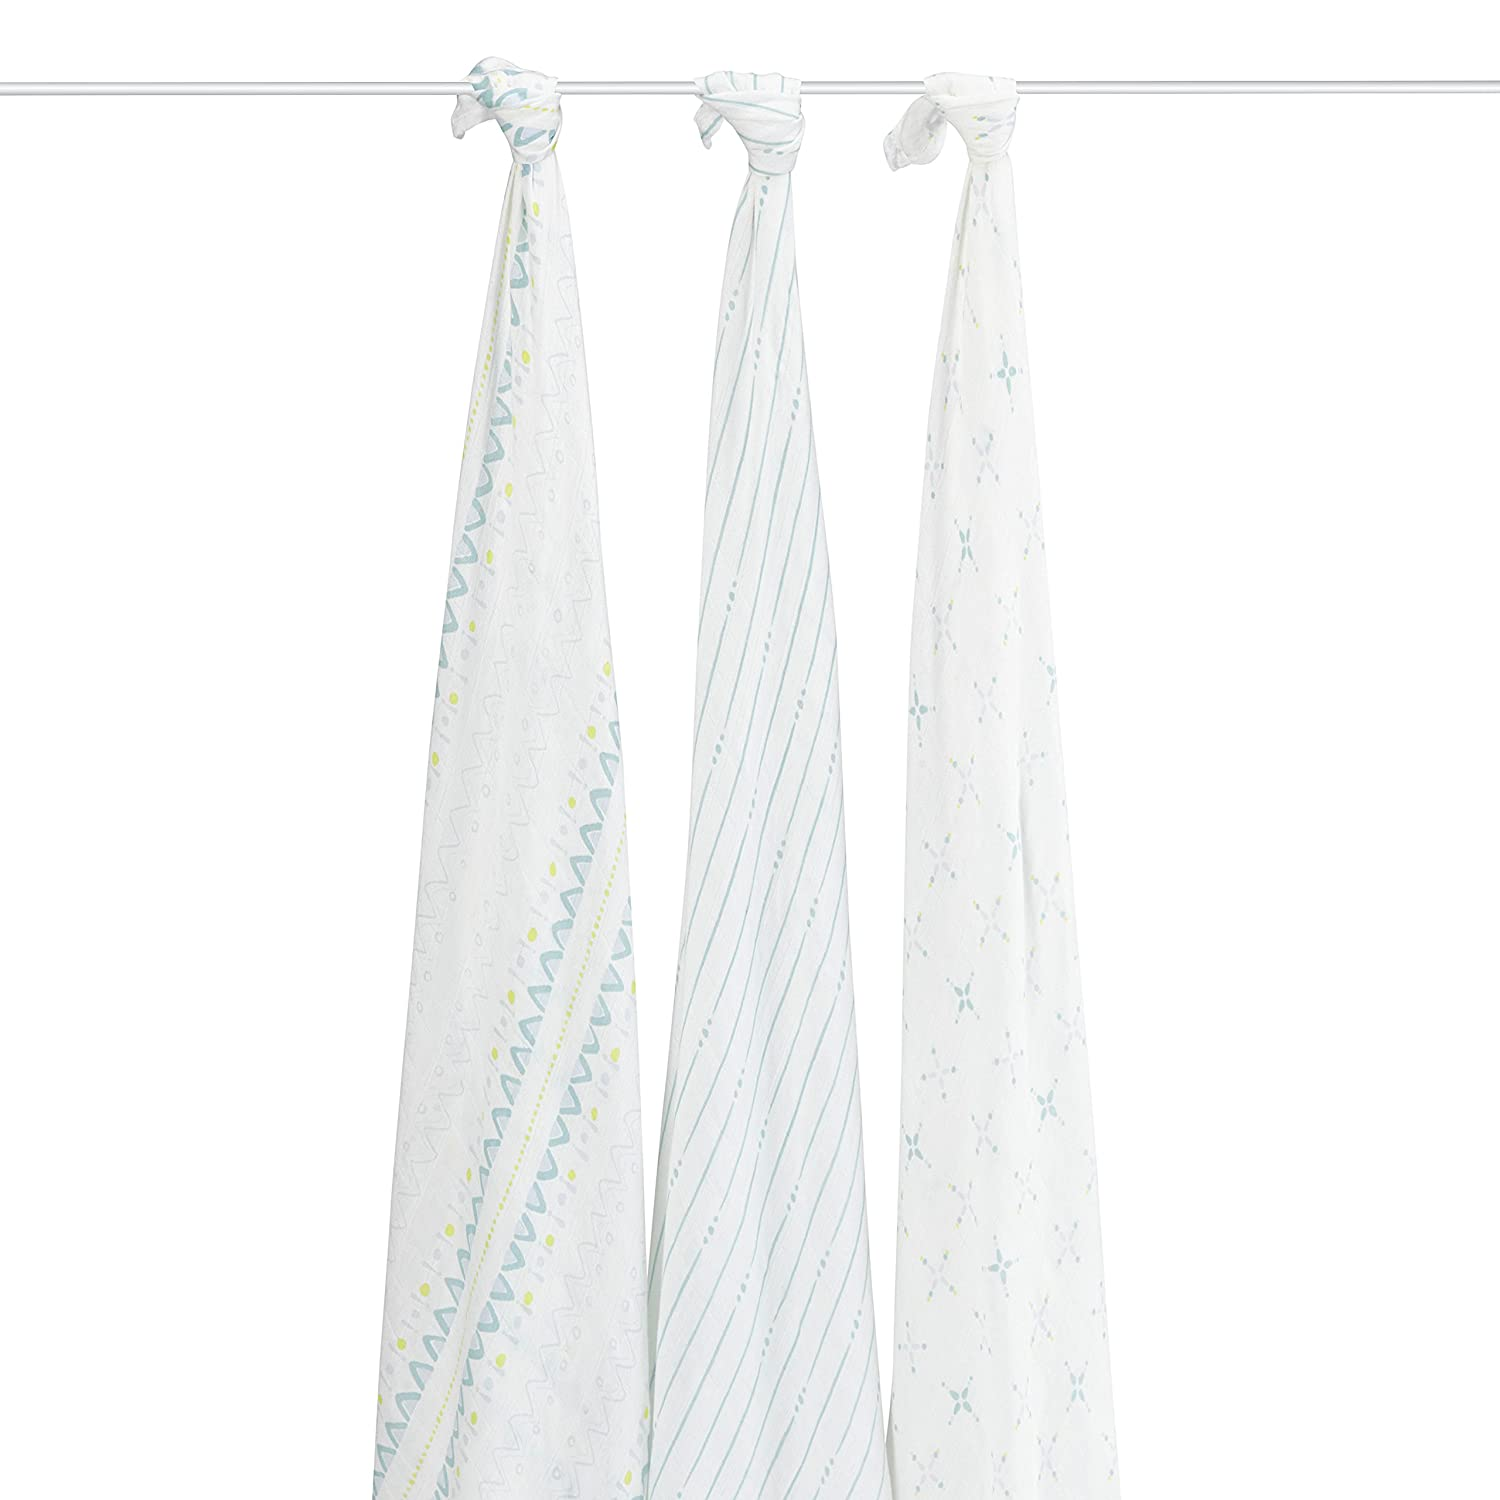 aden + anais Rayon From Bamboo Swaddle Blanket 3 Pack - Fresh